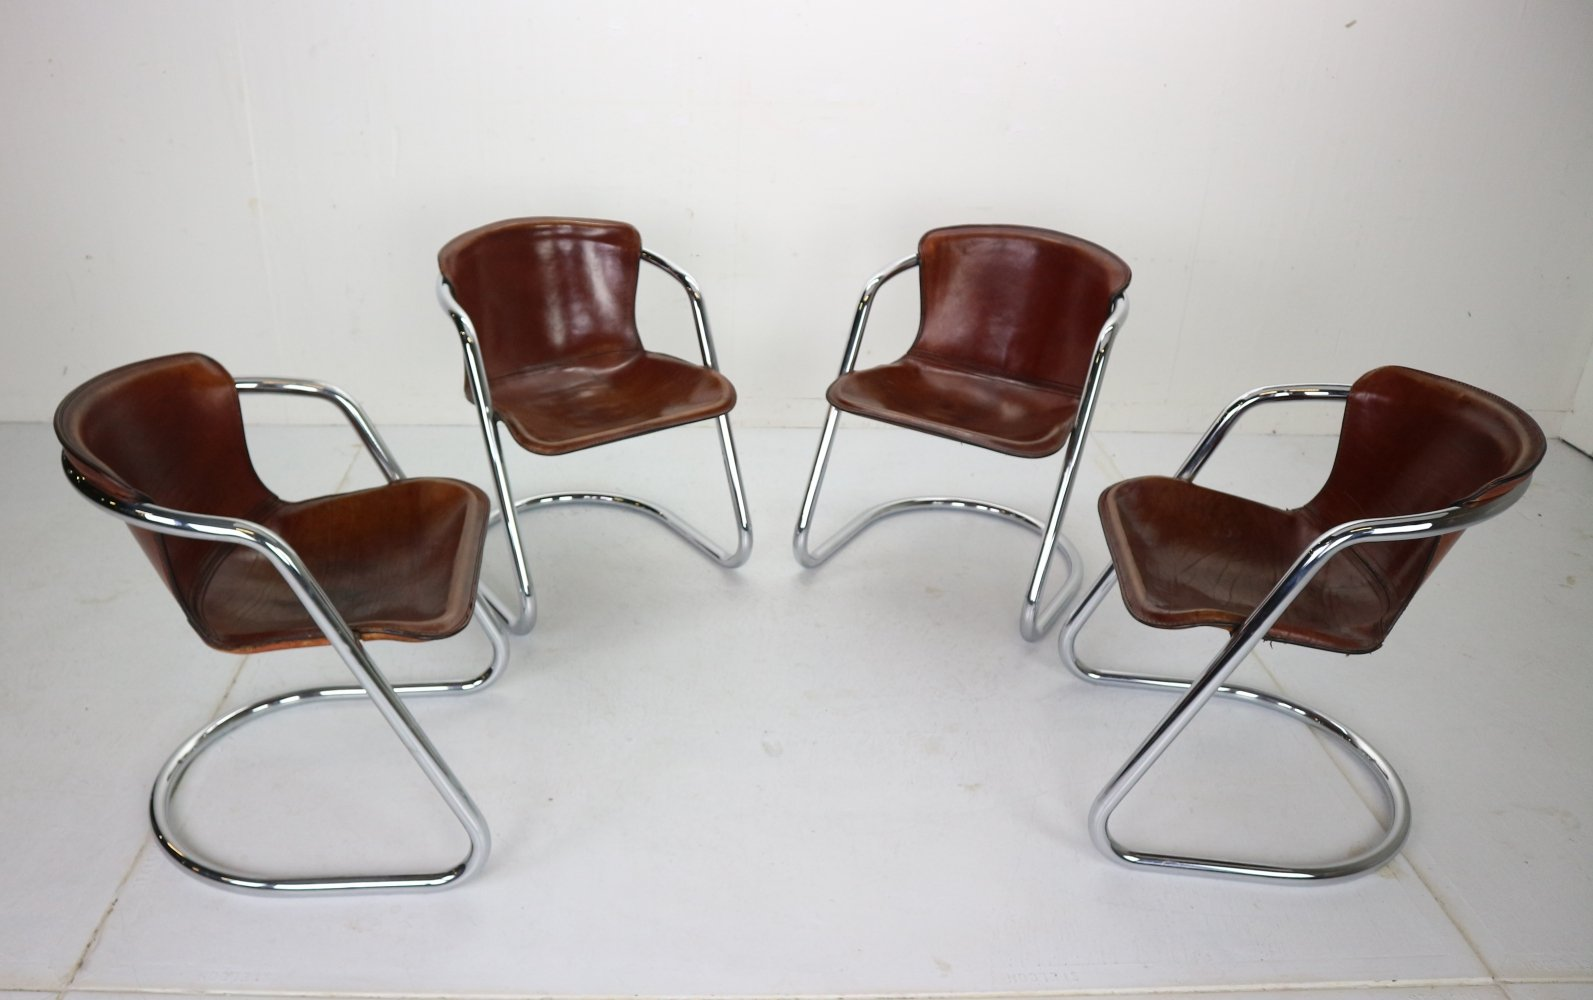 Set of 4 Willy Rizzo Leather Dining Chairs for Cidue, Italy 1970s